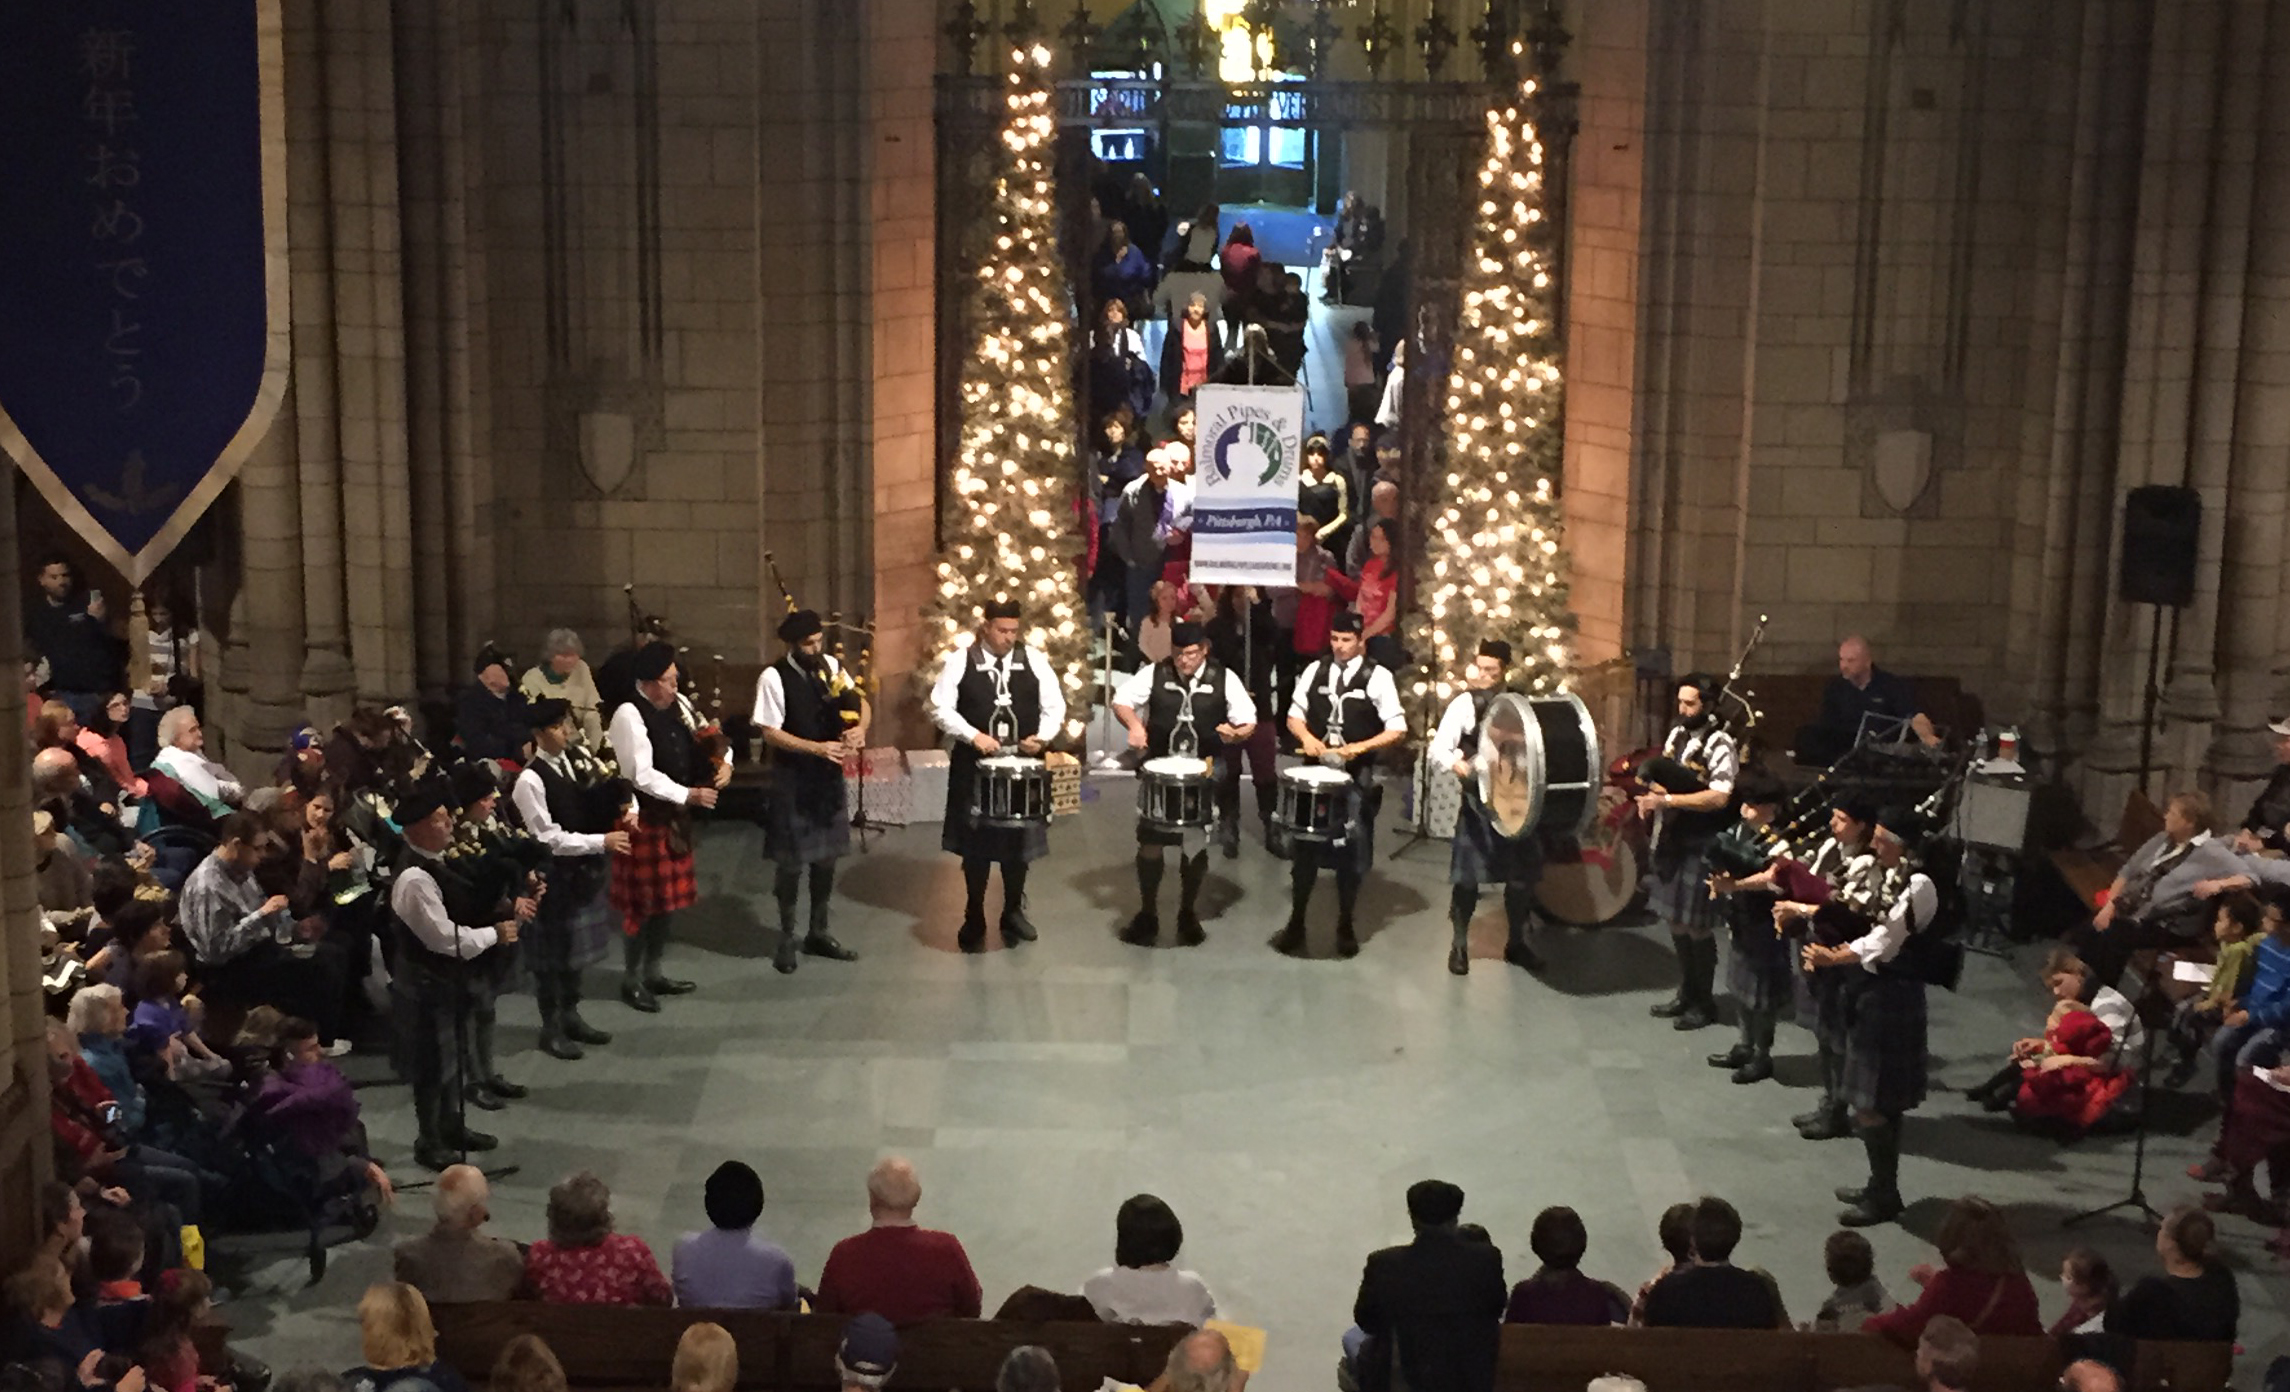 Balmoral Pipes & Drums will be performing at Pittsburgh's First Night